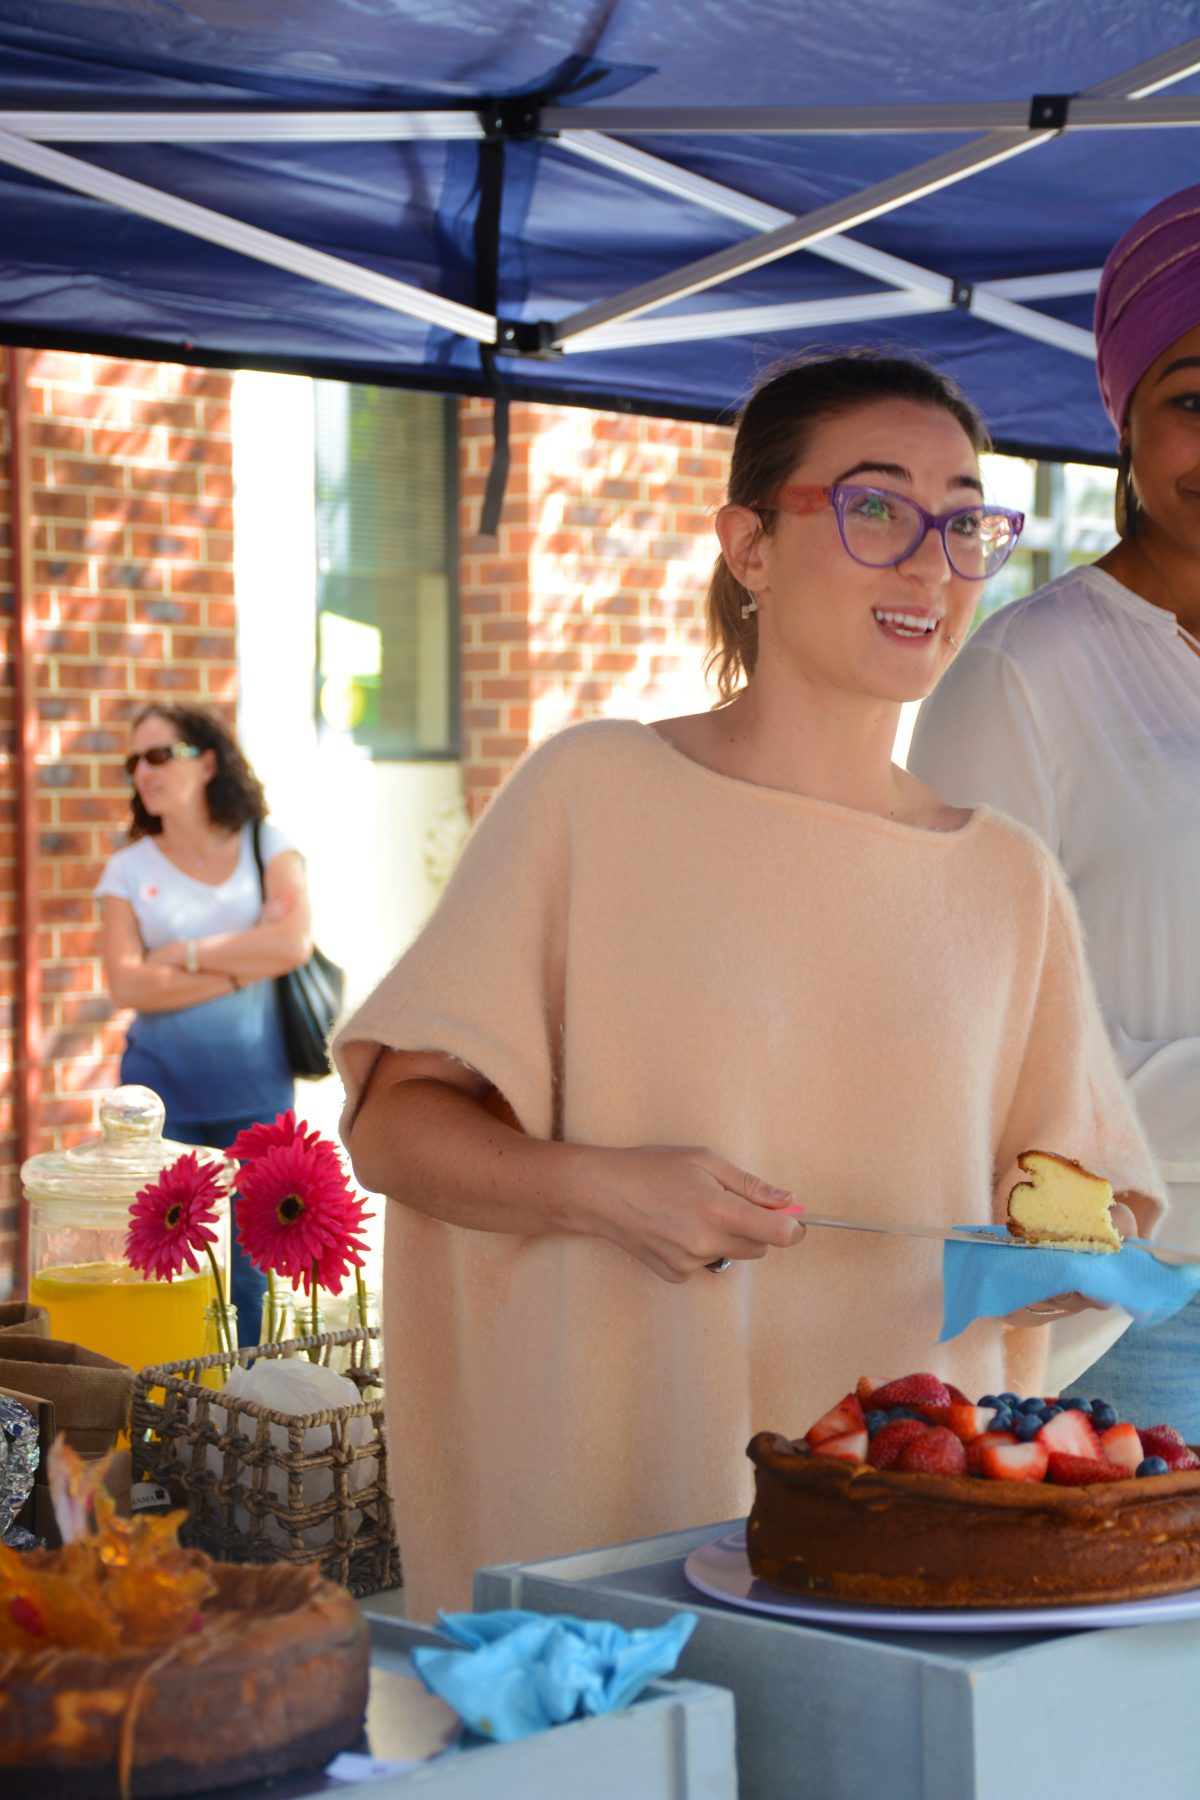 Alice Zaslavsky, popularly known as 'Alice in Frames' (Masterchef fame) judging the cheesecake competition at In One Voice Jewish Festival, 2016 - thespiceadventuress.com